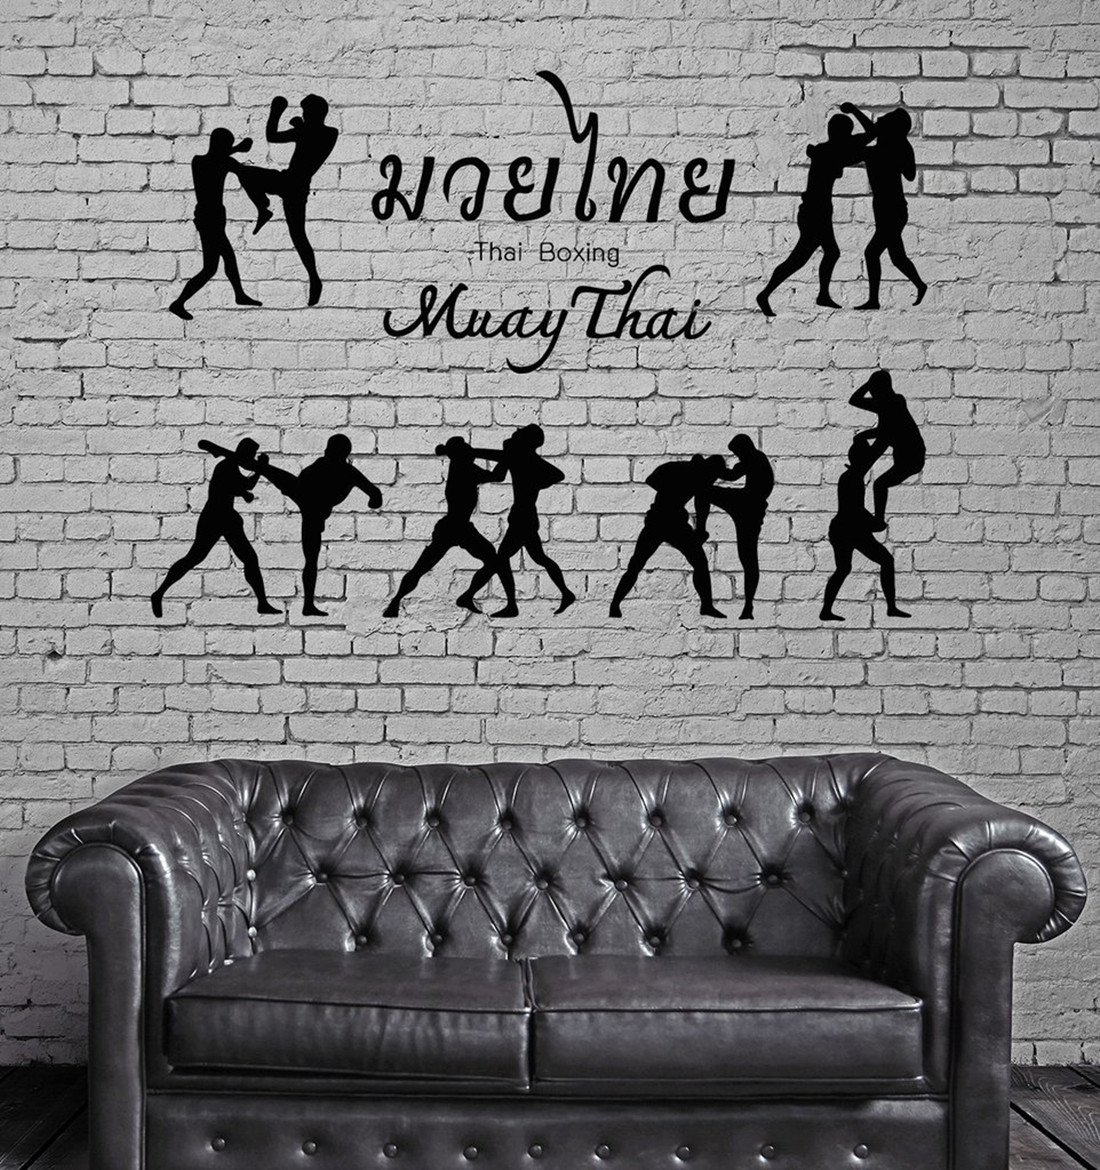 BorisMotley Wall Decal Thai Boxing Martial Arts Vinyl Removable Mural Art Decoration Stickers for Home Bedroom Nursery Living Room Kitchen by BorisMotley